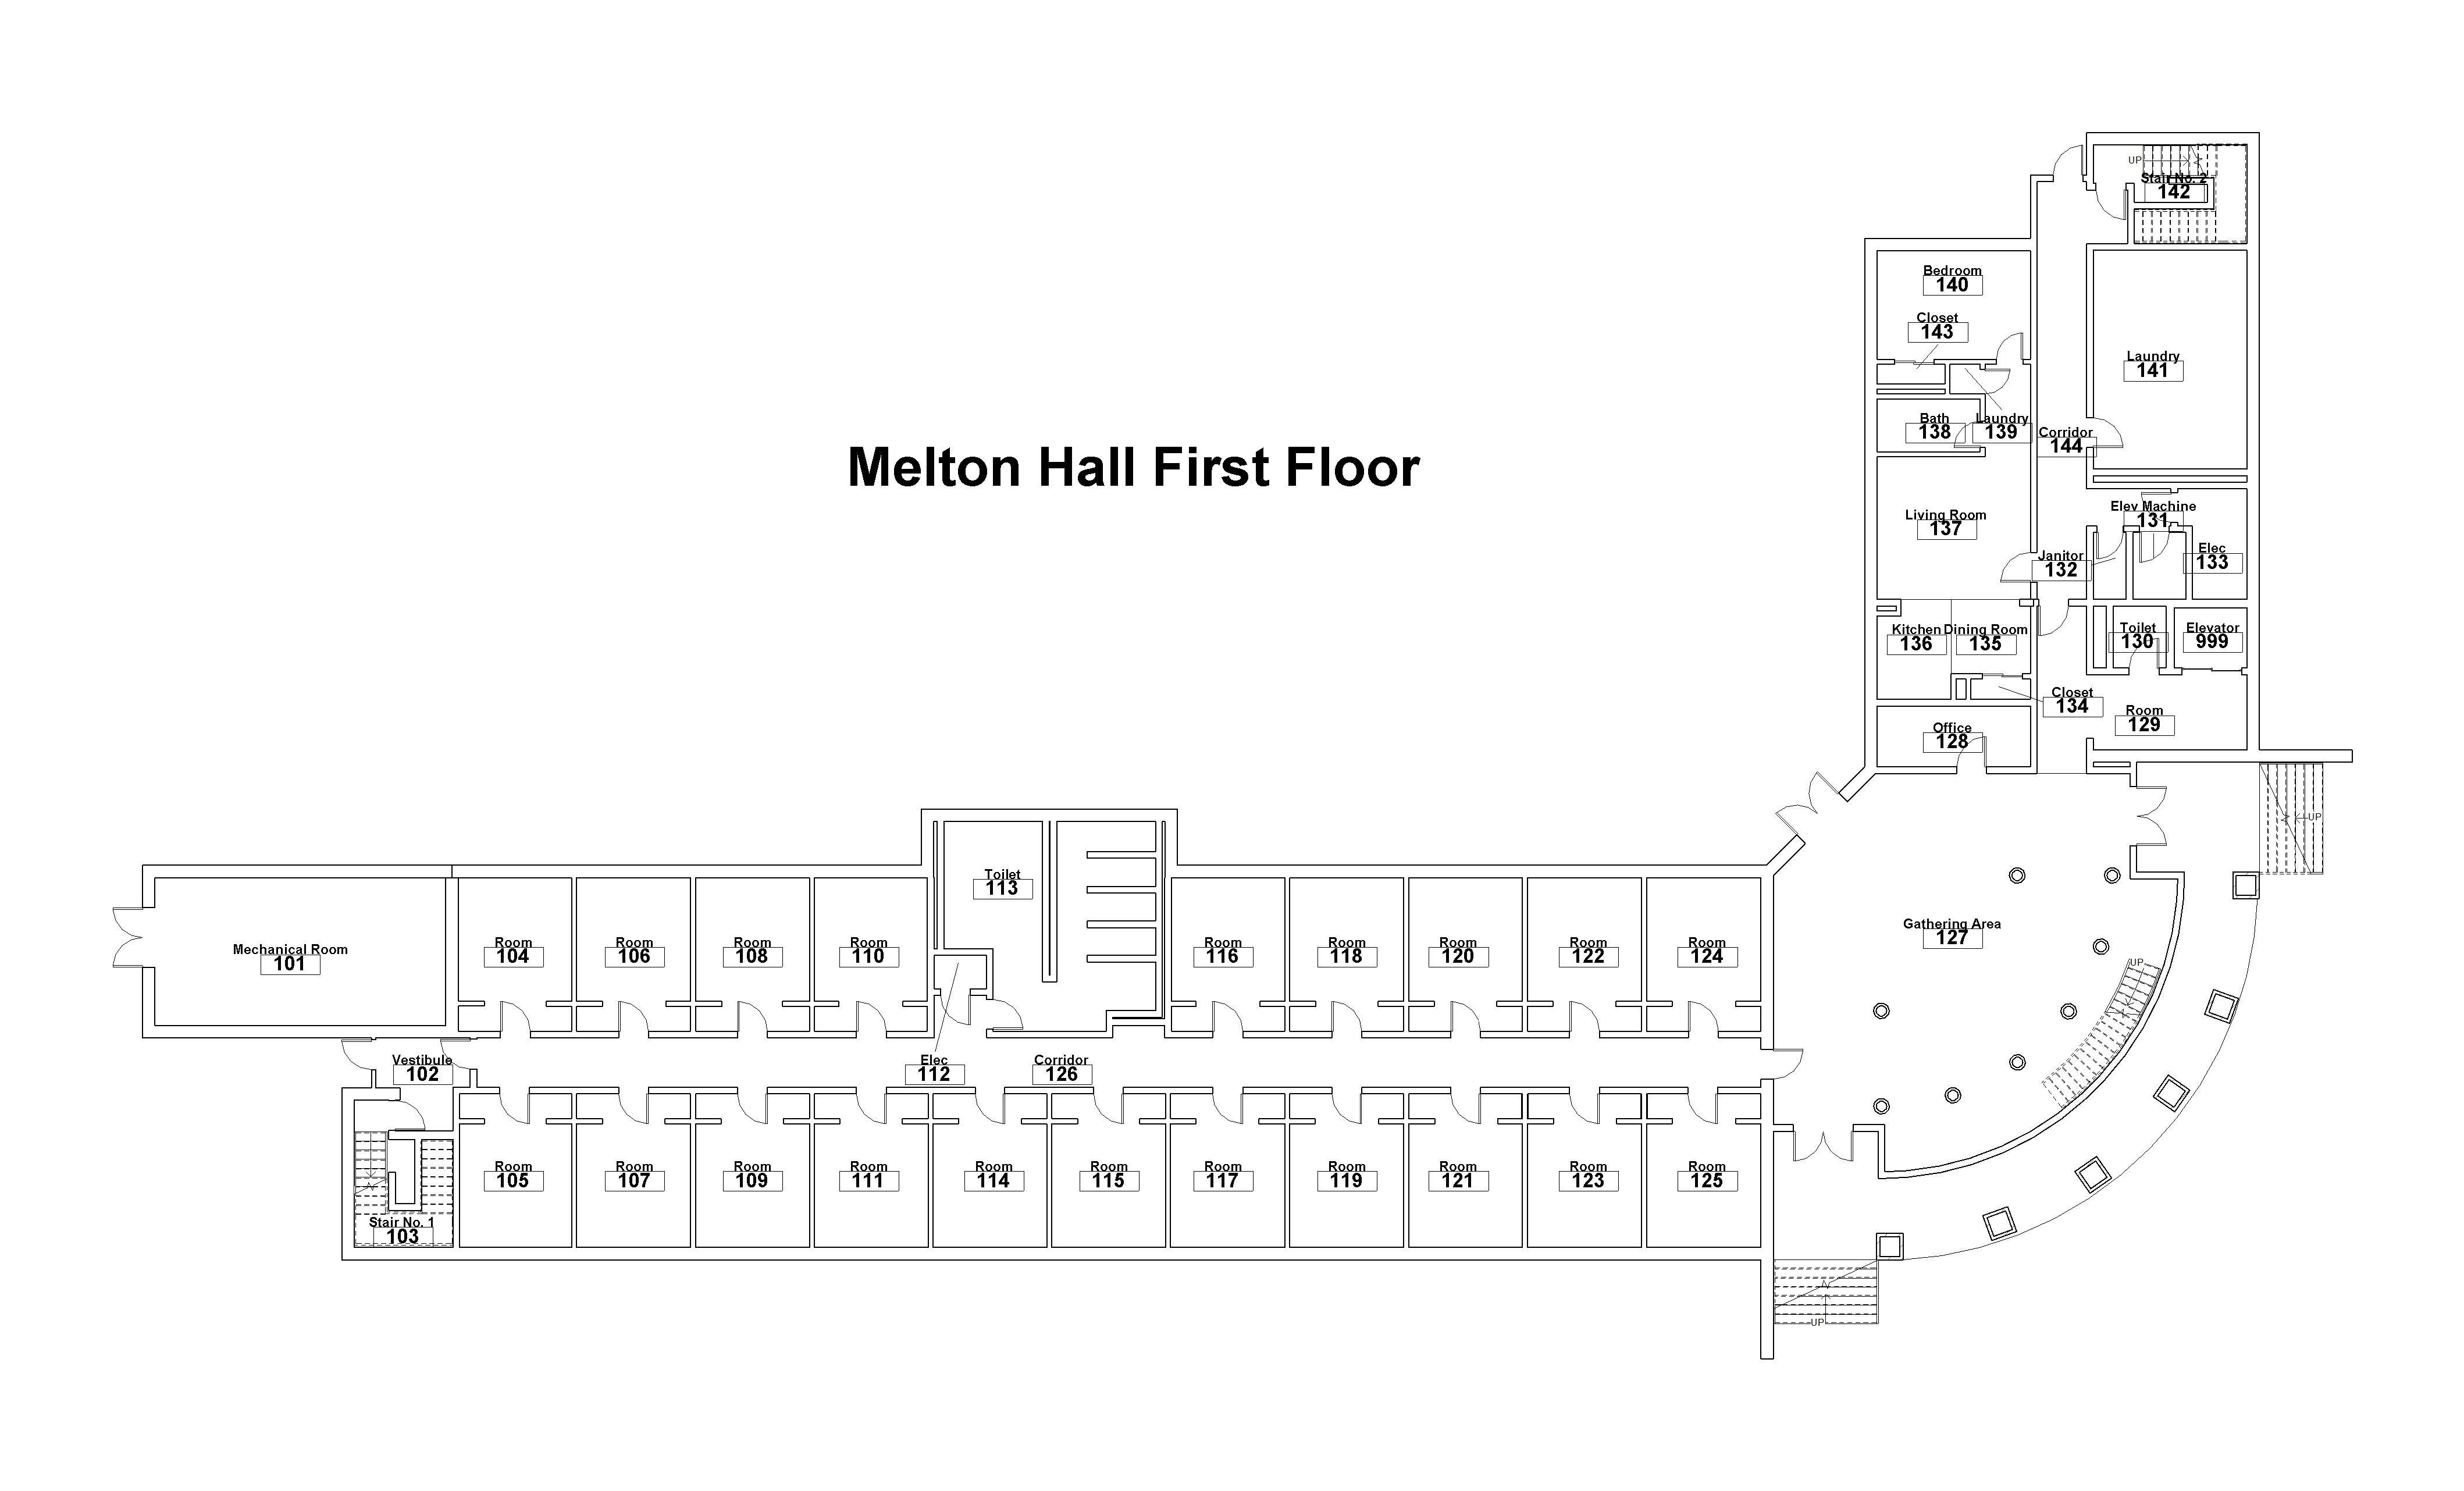 building-floorplan-melton-hall-floor-one